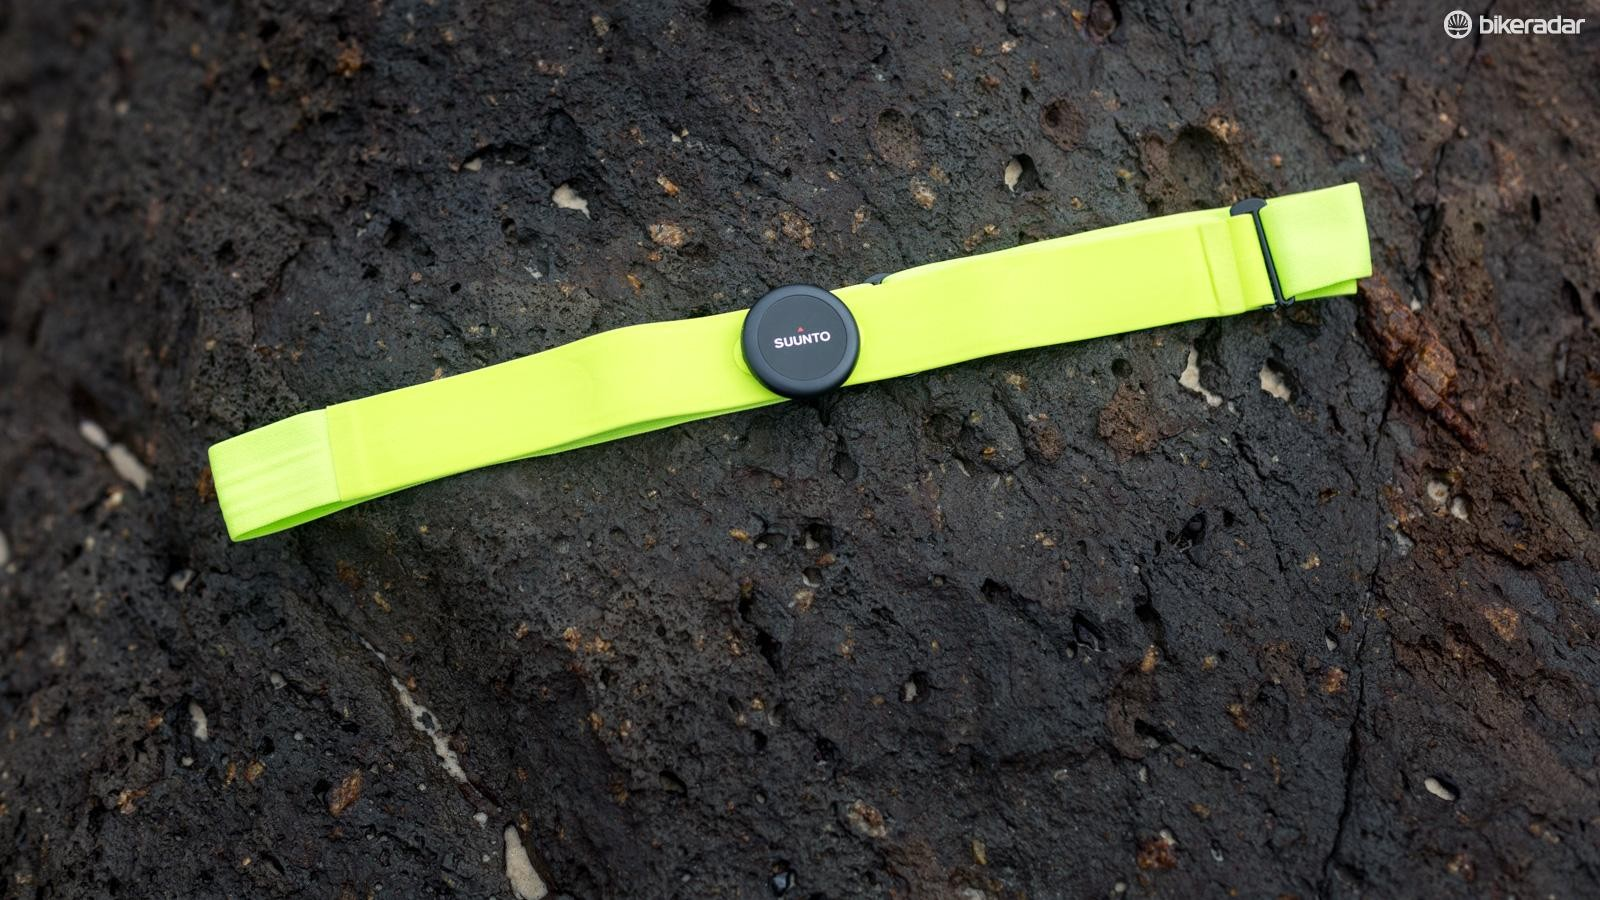 Suunto sent over their Bluetooth heart rate strap, but the watch will also connect to third party sensors